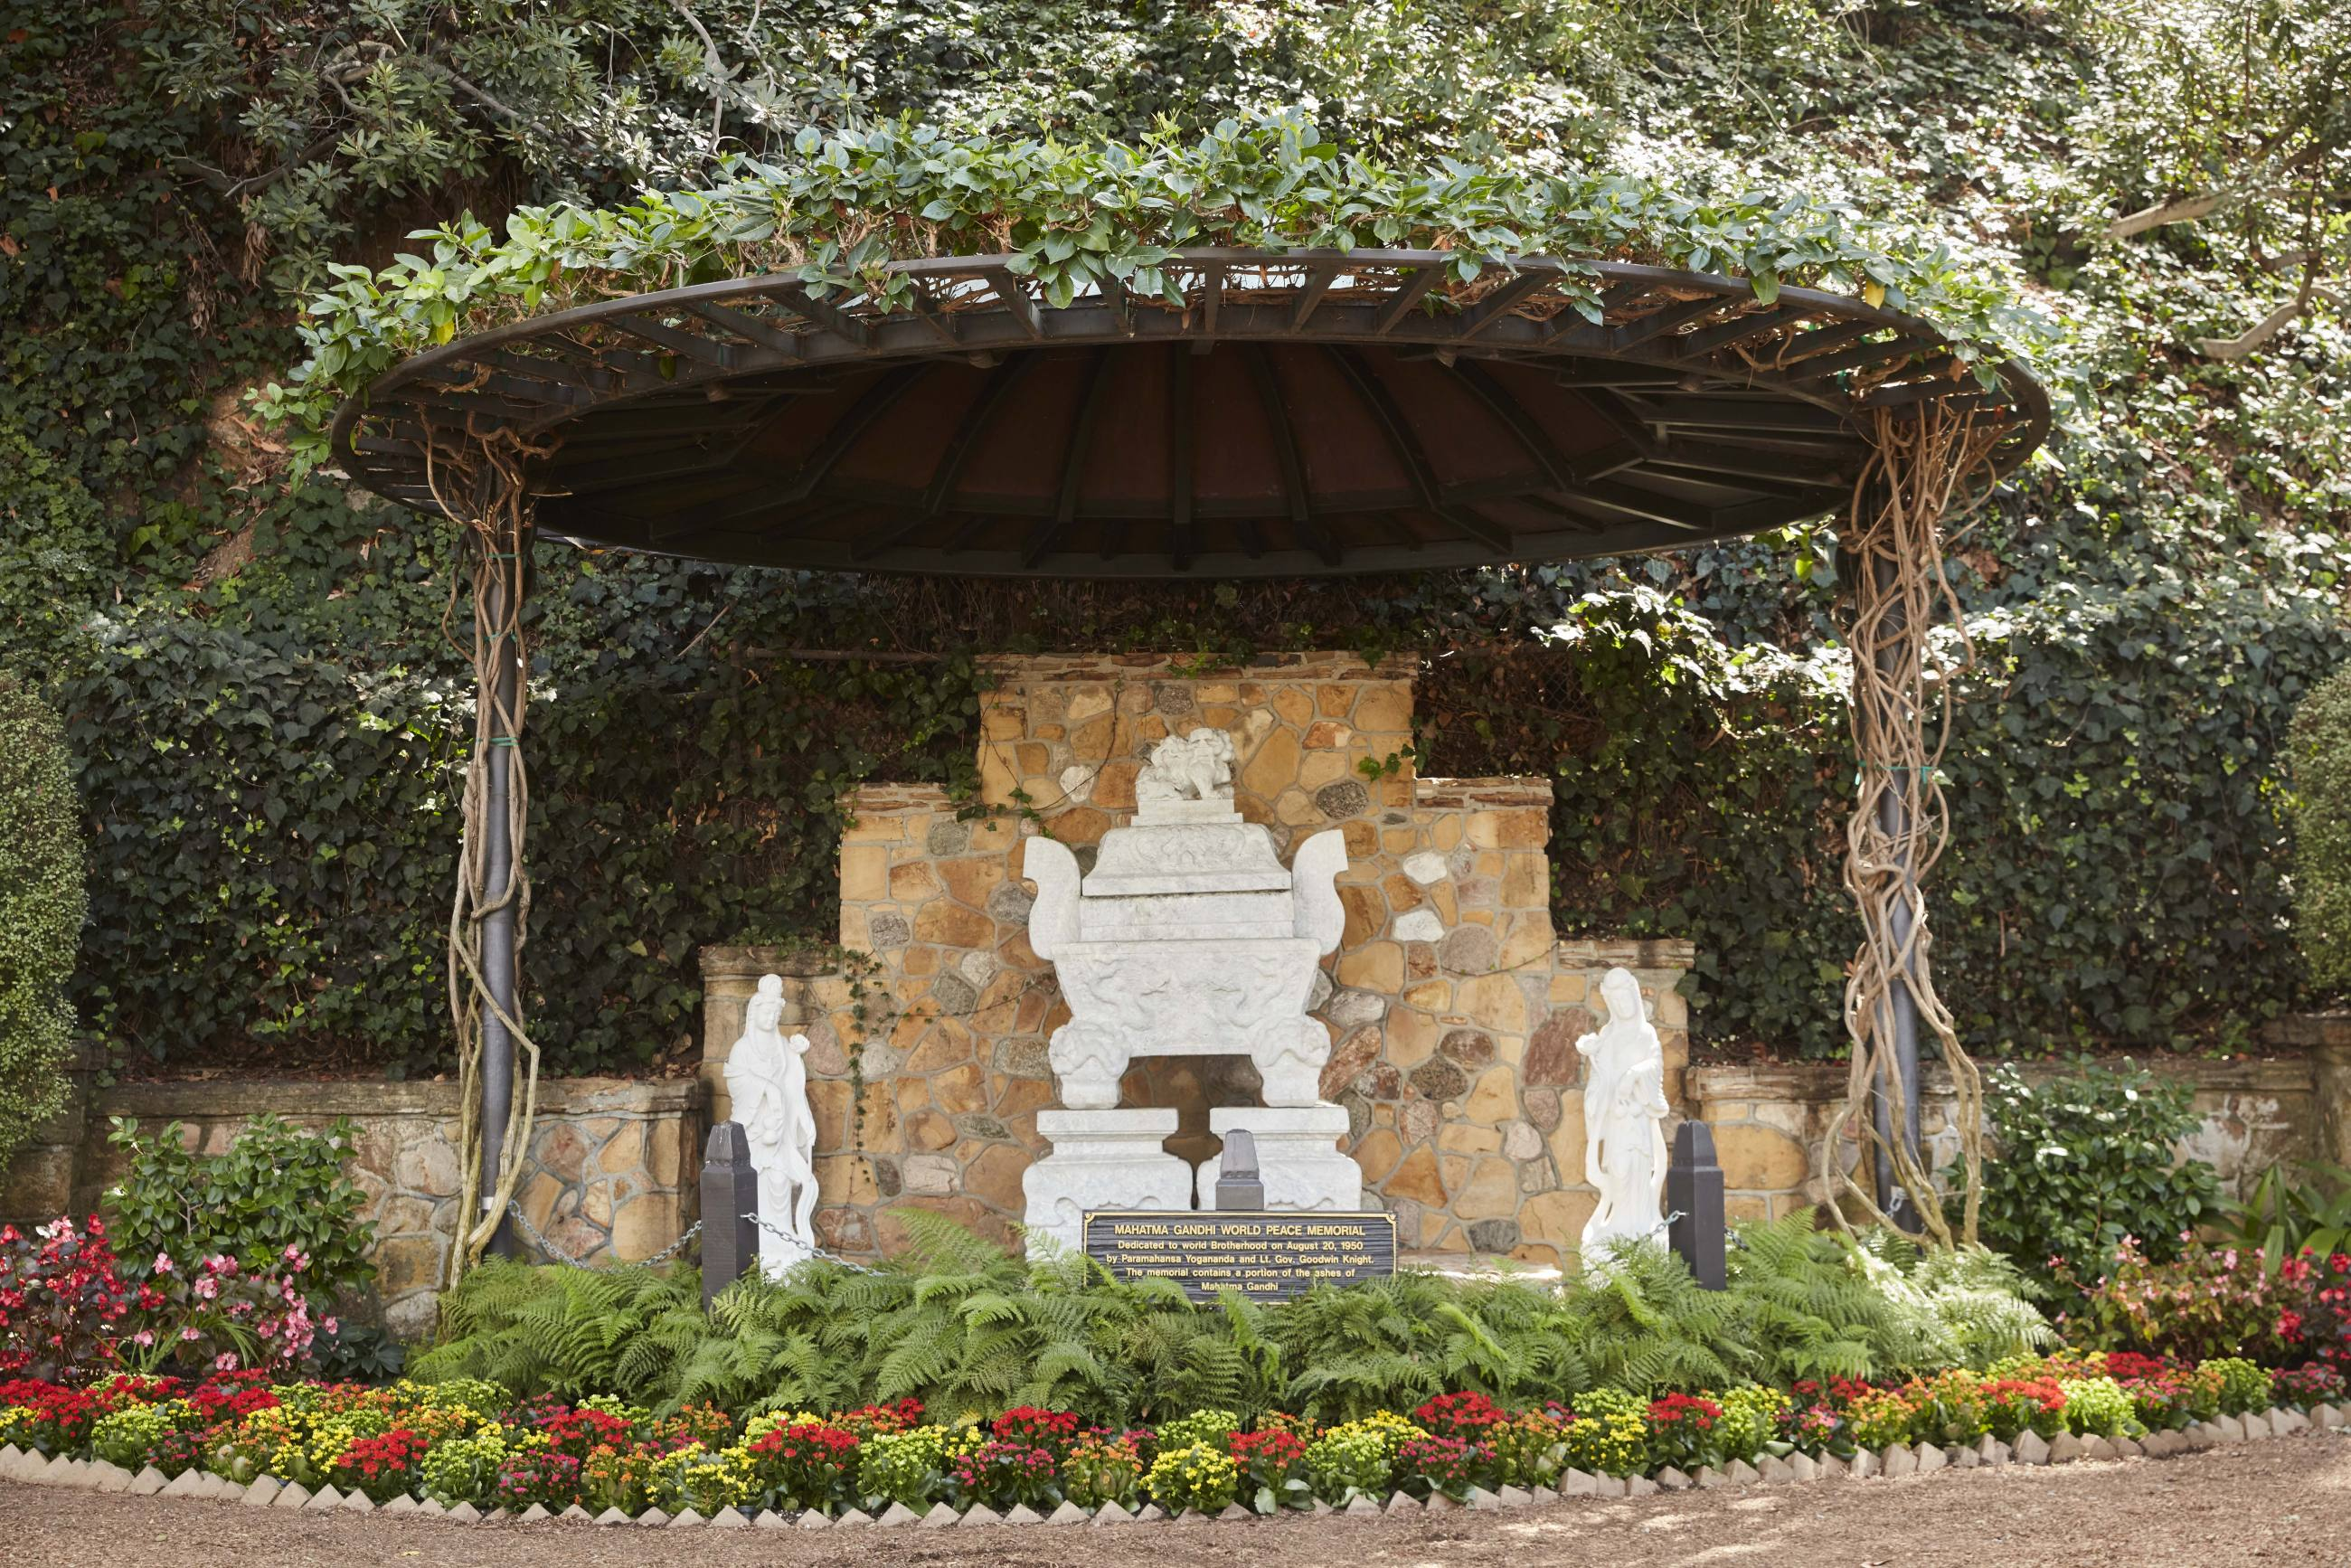 Mahatma Gandhi World Peace Memorial at the Self-Realization Fellowship Lake Shrine